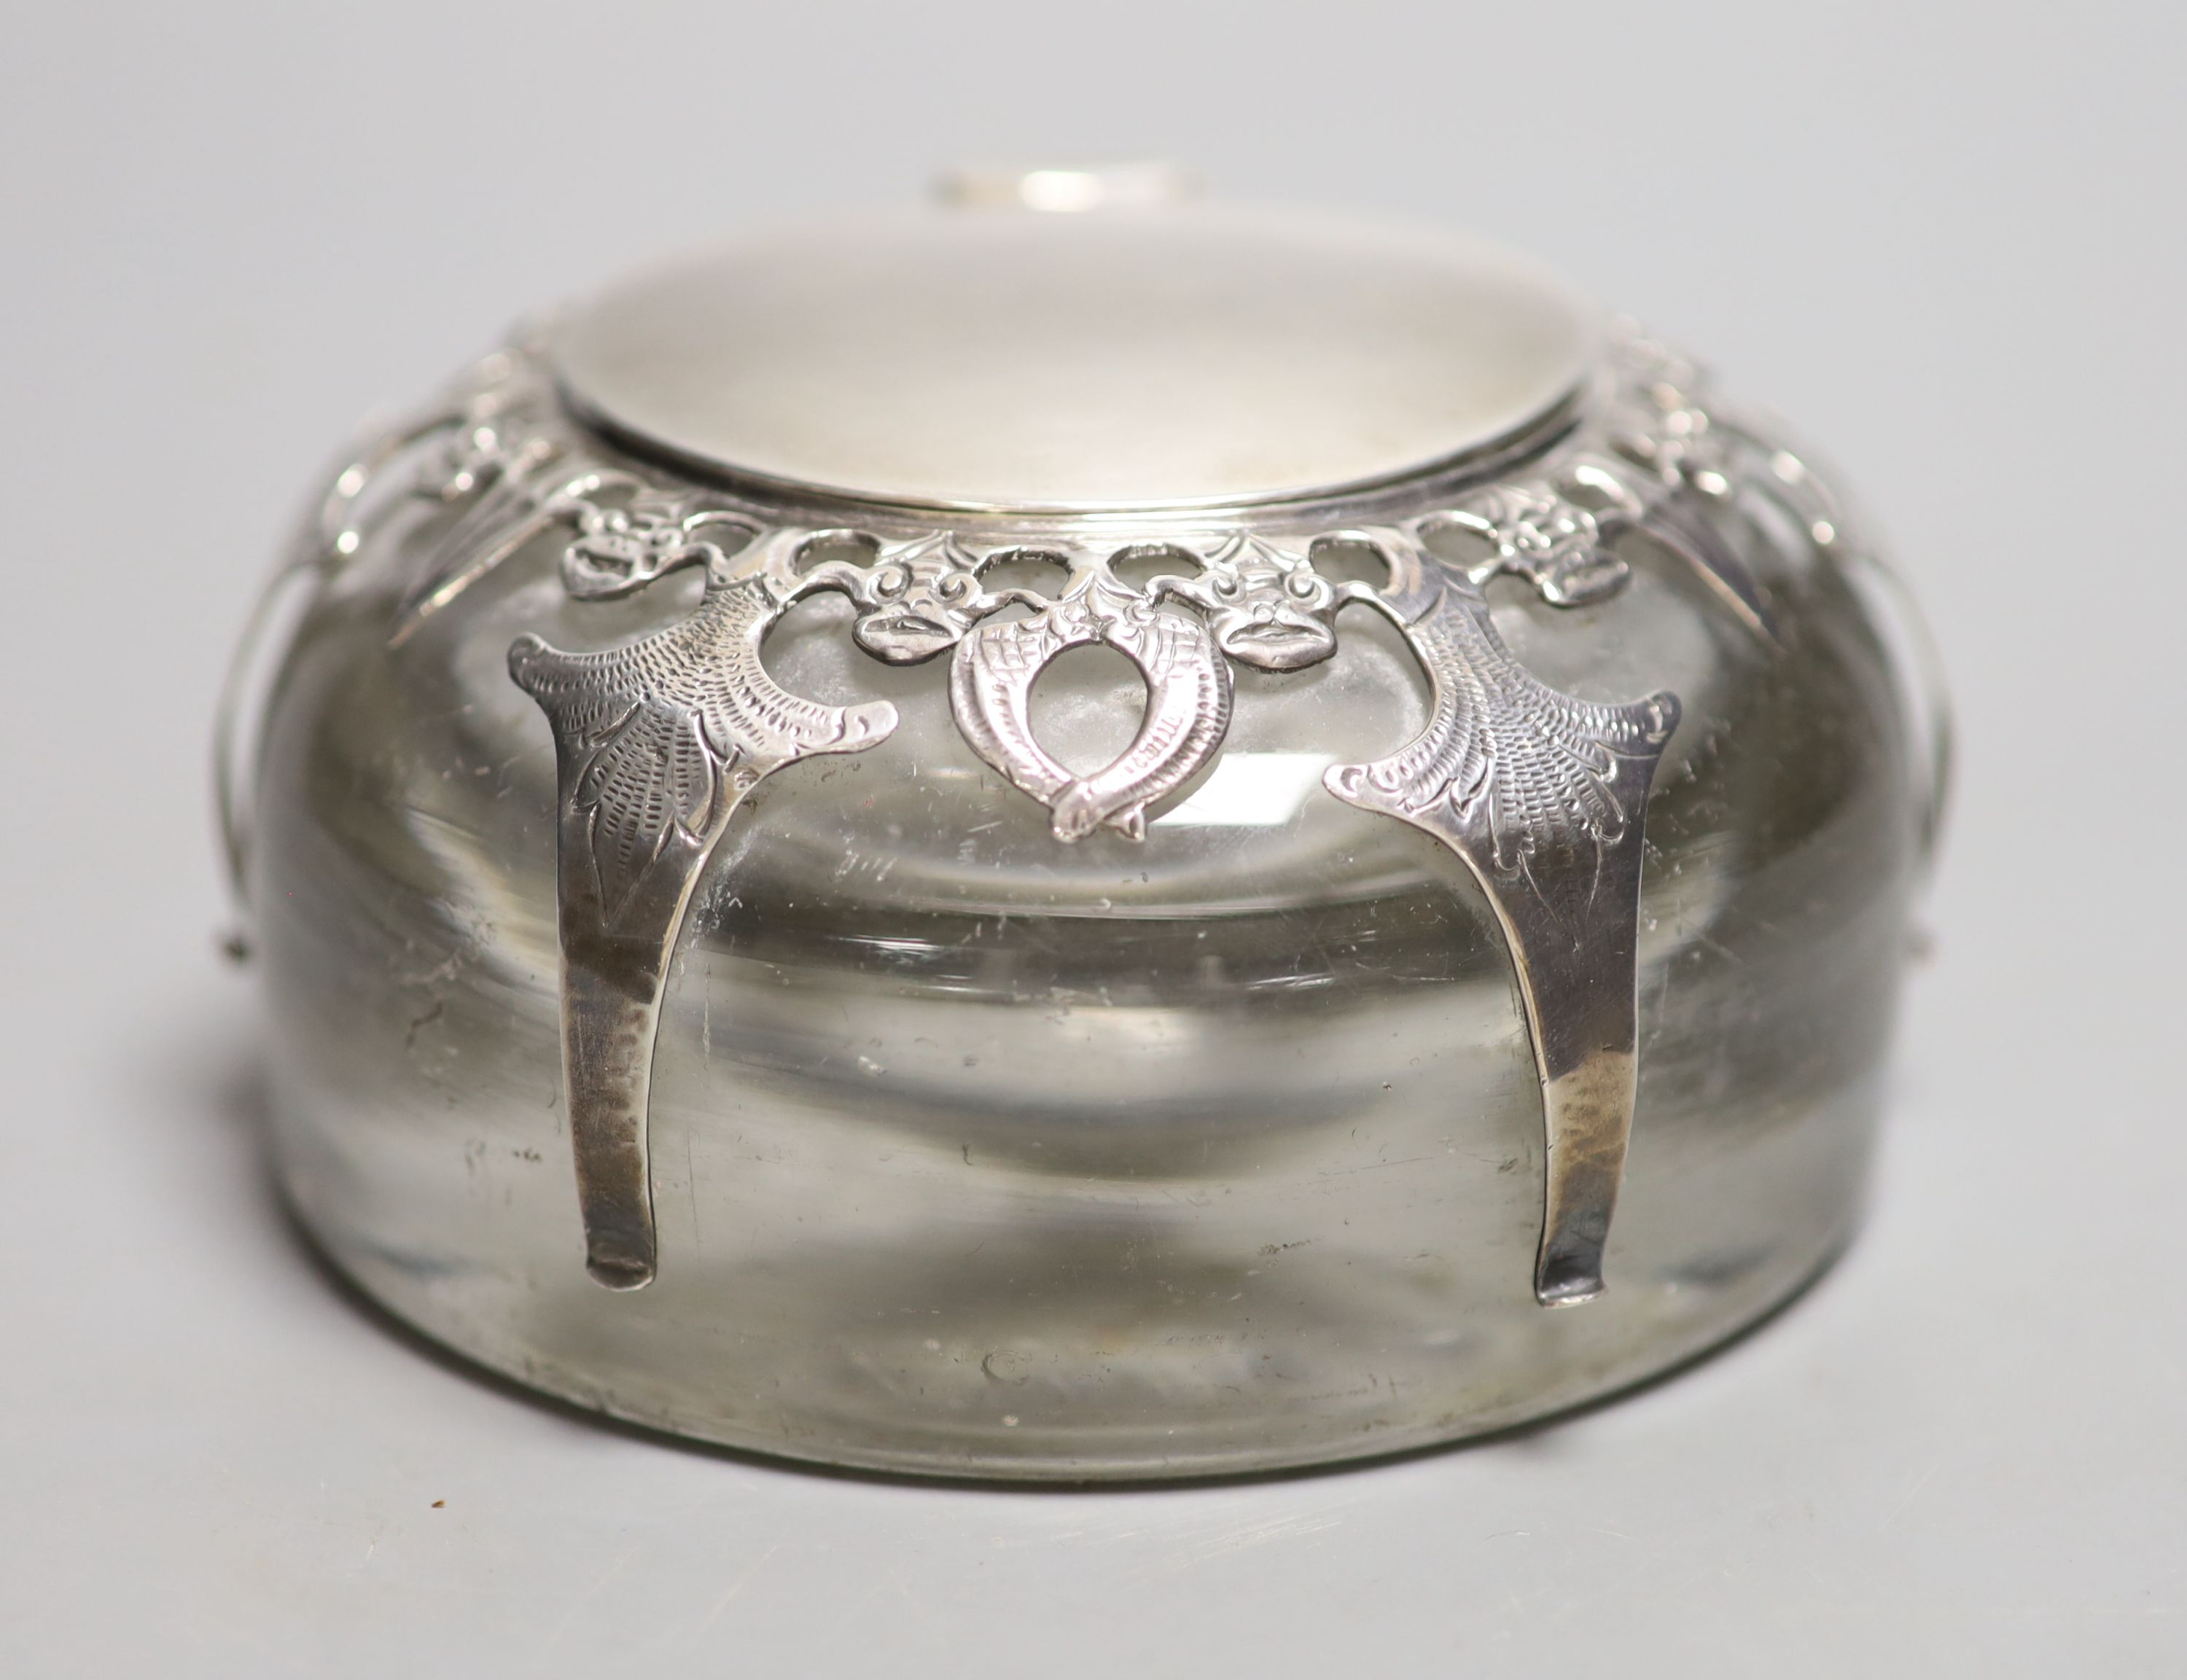 An Edwardian silver mounted domed glass inkwell, London, 1901, base diameter 12.3cm.